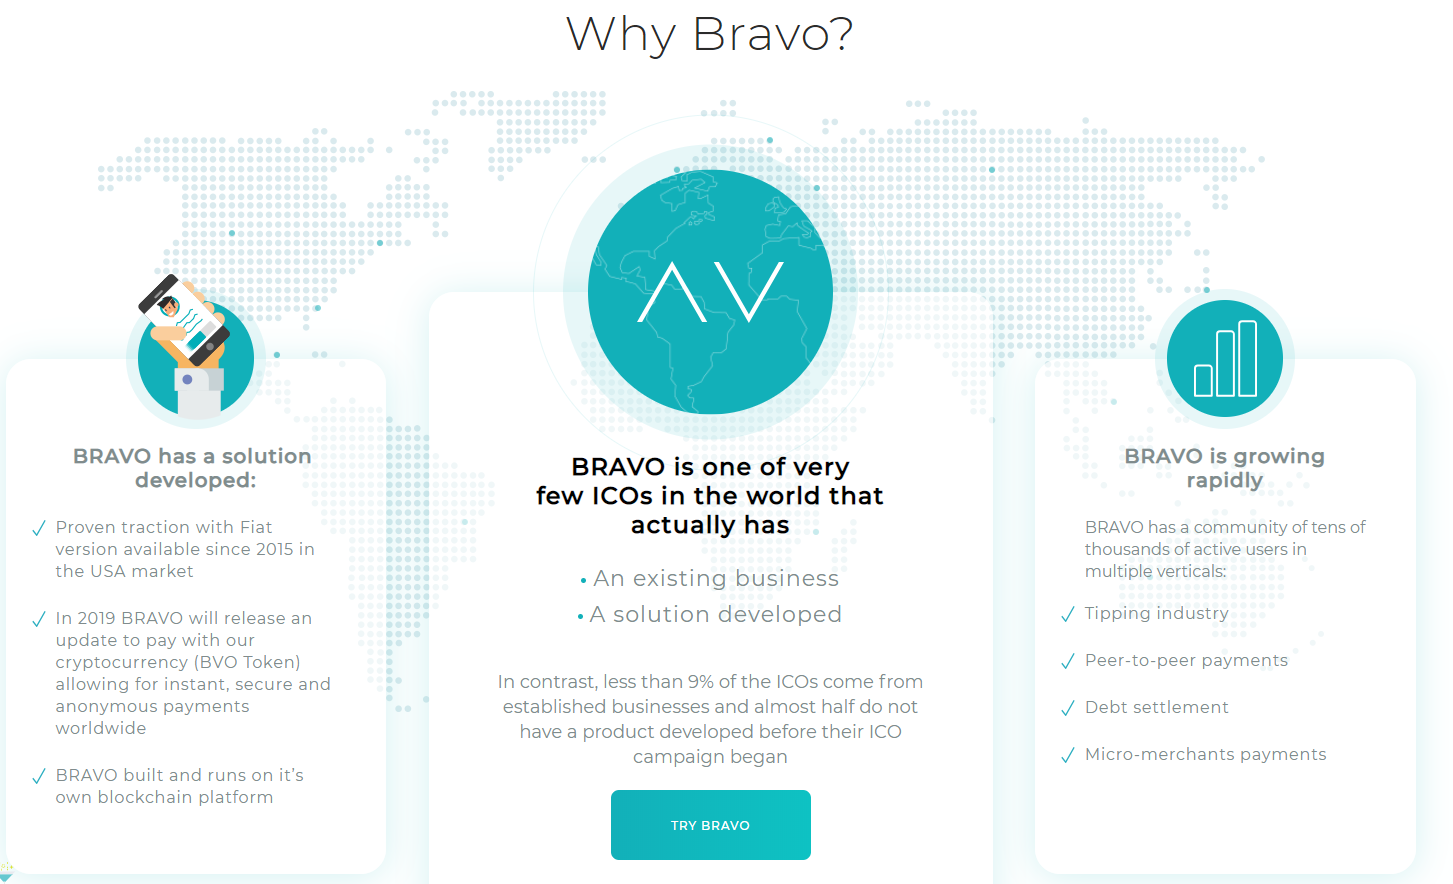 BRAVO – Providing a Cashless, Anonymous and Secured Payment